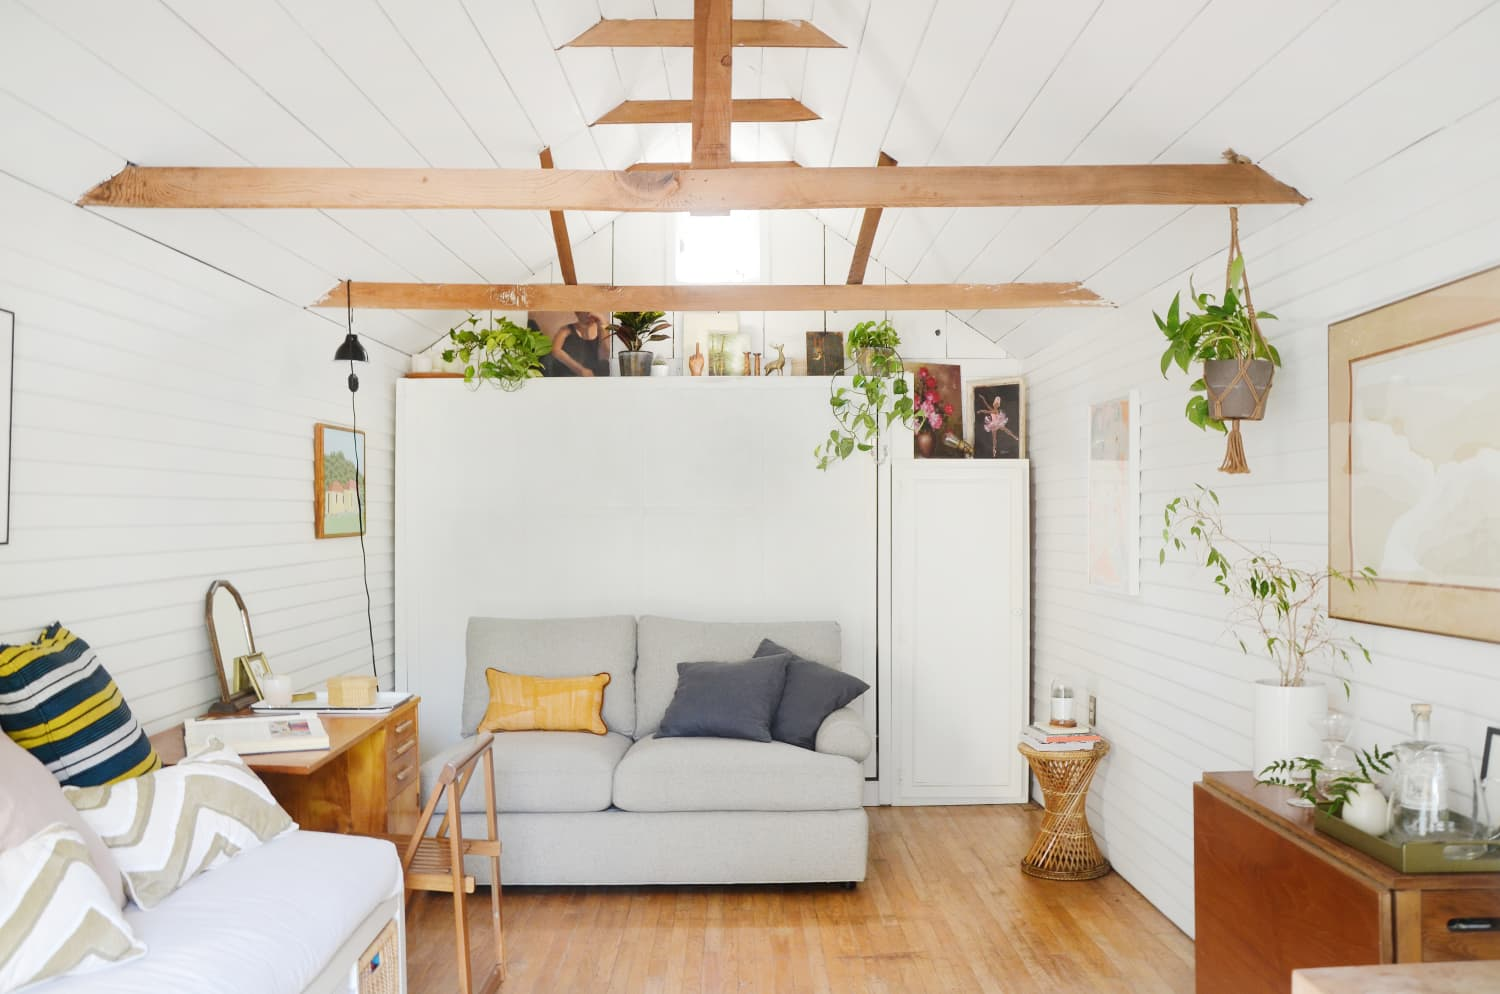 The Best Small Space Organization Solutions—According to People Who Live In Tiny Homes